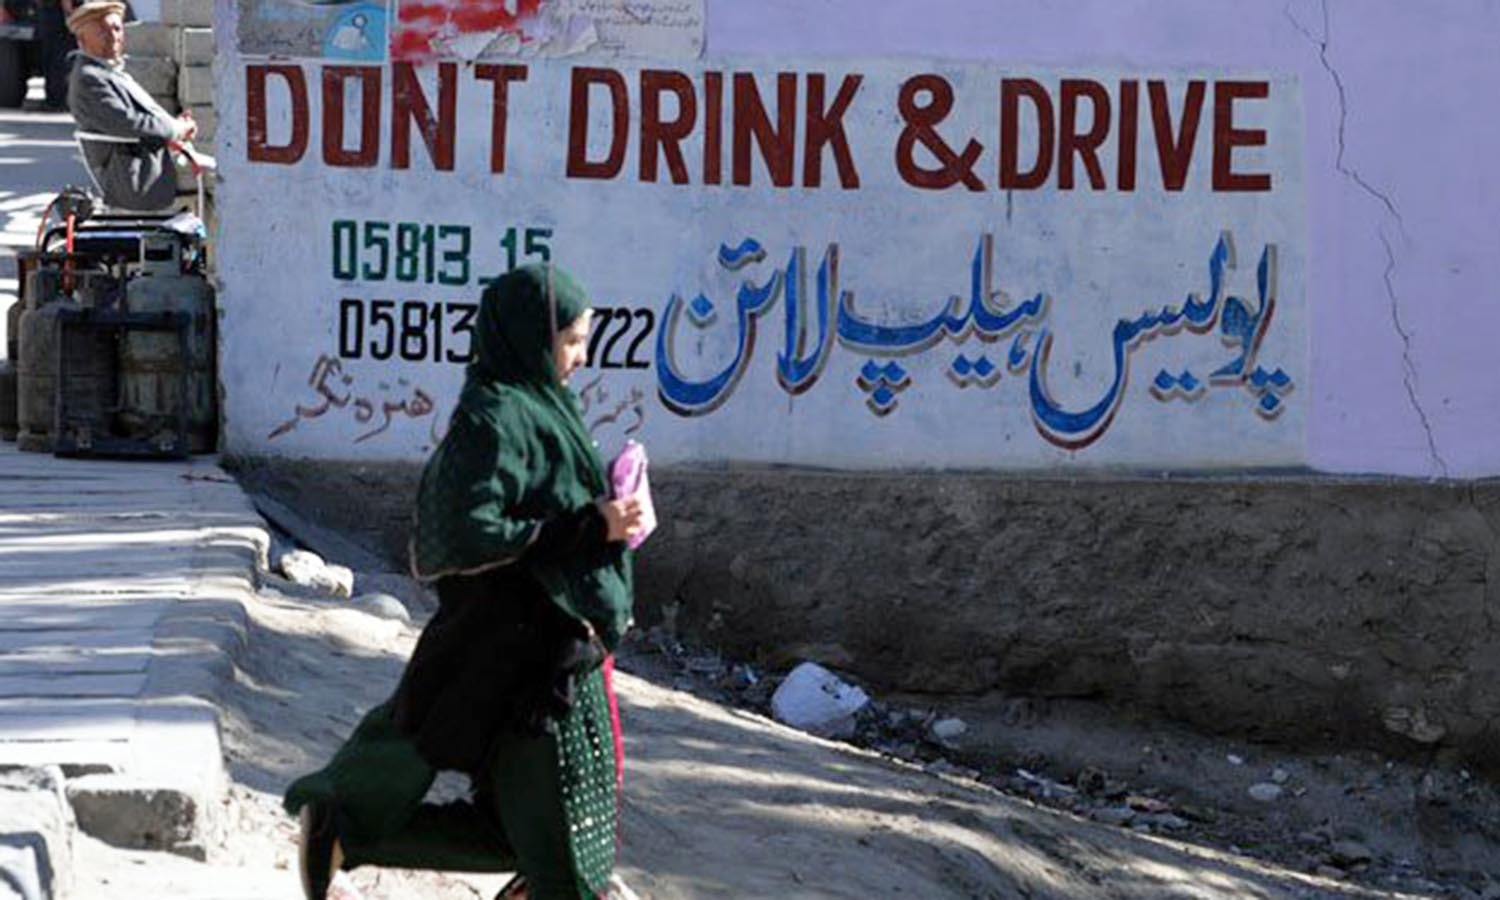 Wines made in the GB region of Hunza are popular with tourists. But visitors are advised to not go frolicking in their rented vehicles when under the influence.